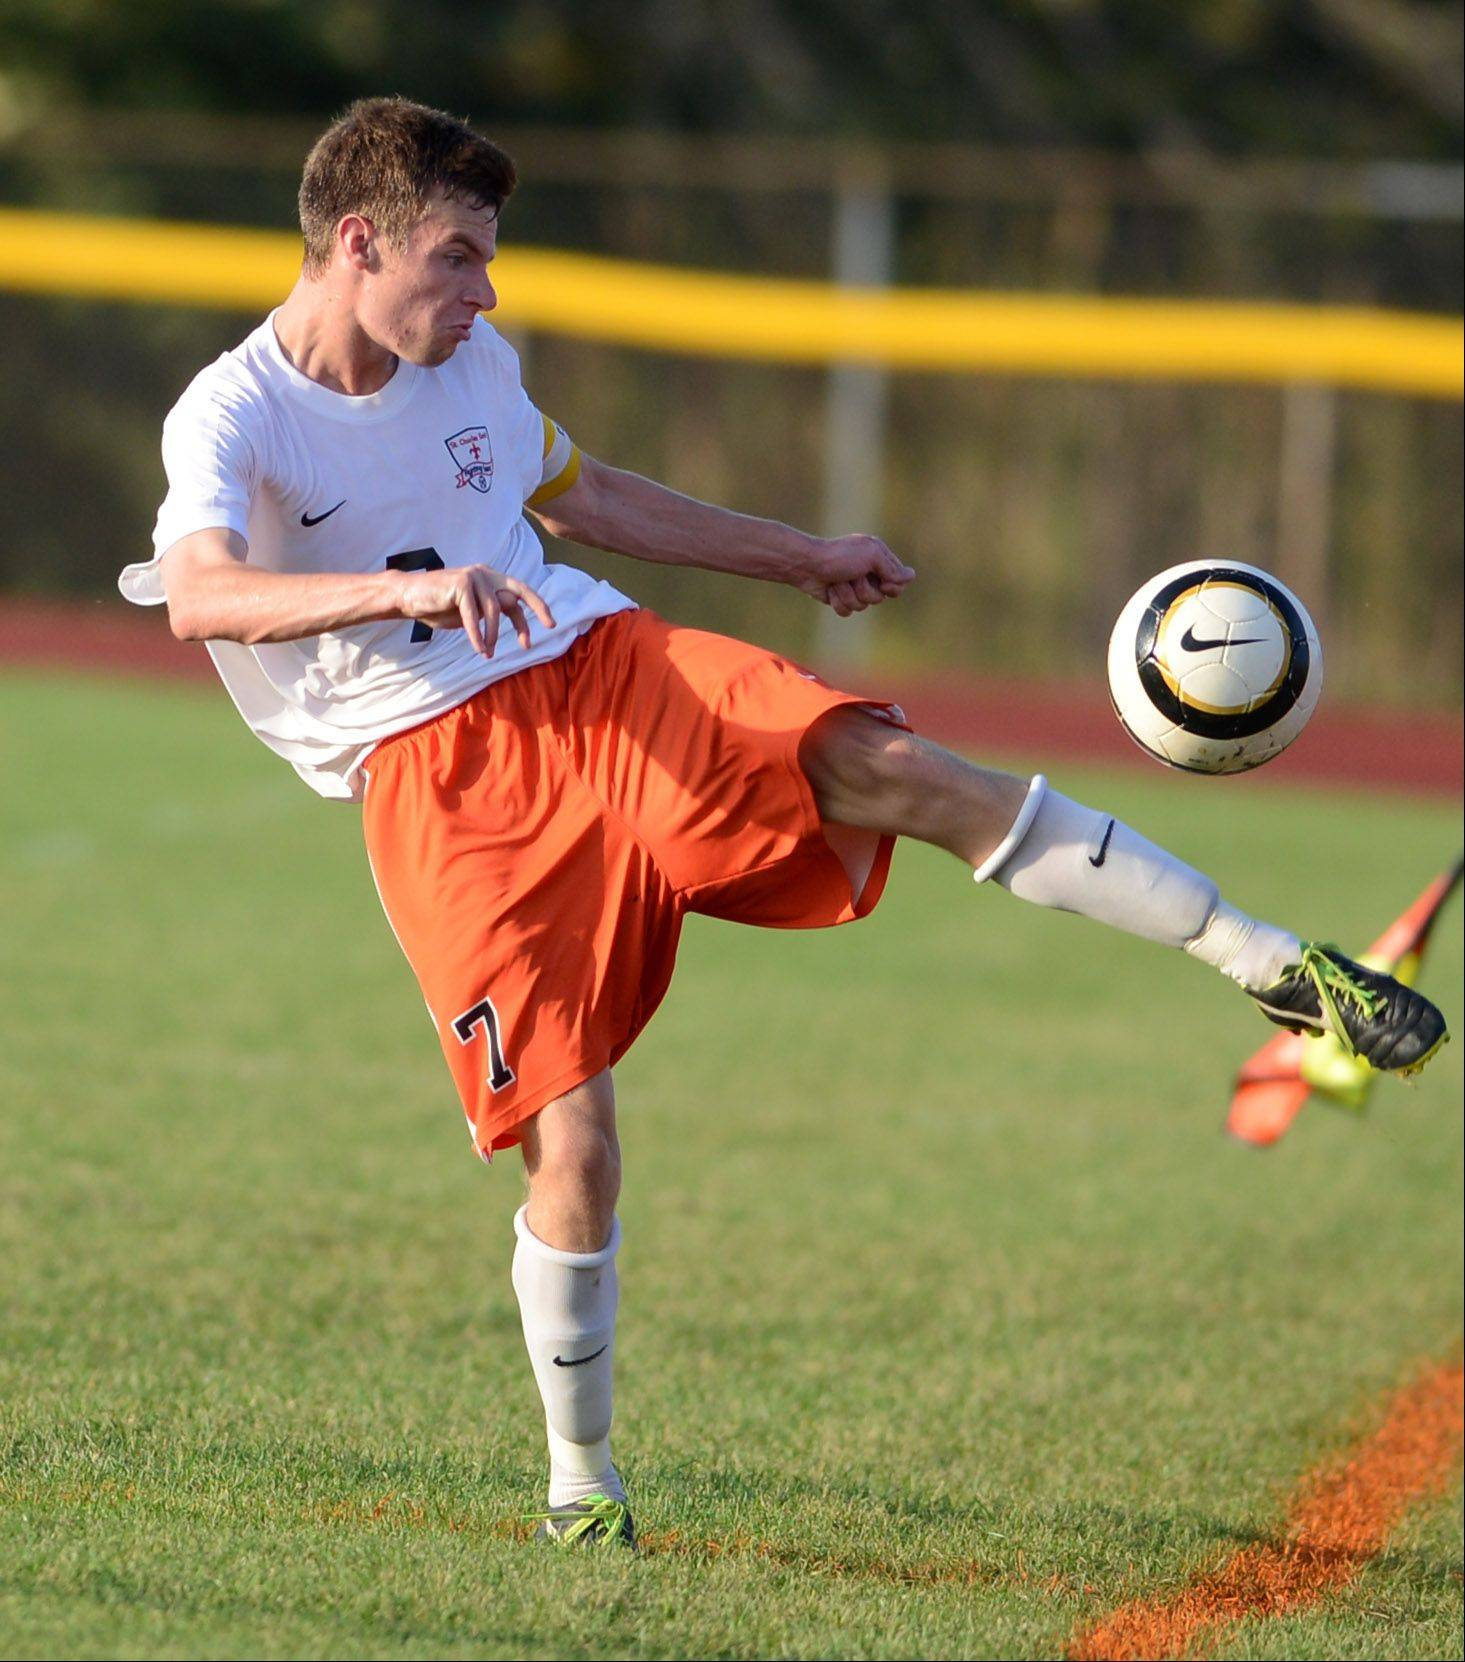 St. Charles East's Jacob Sterling clears the ball against Streamwood during Thursday's game in St. Charles.